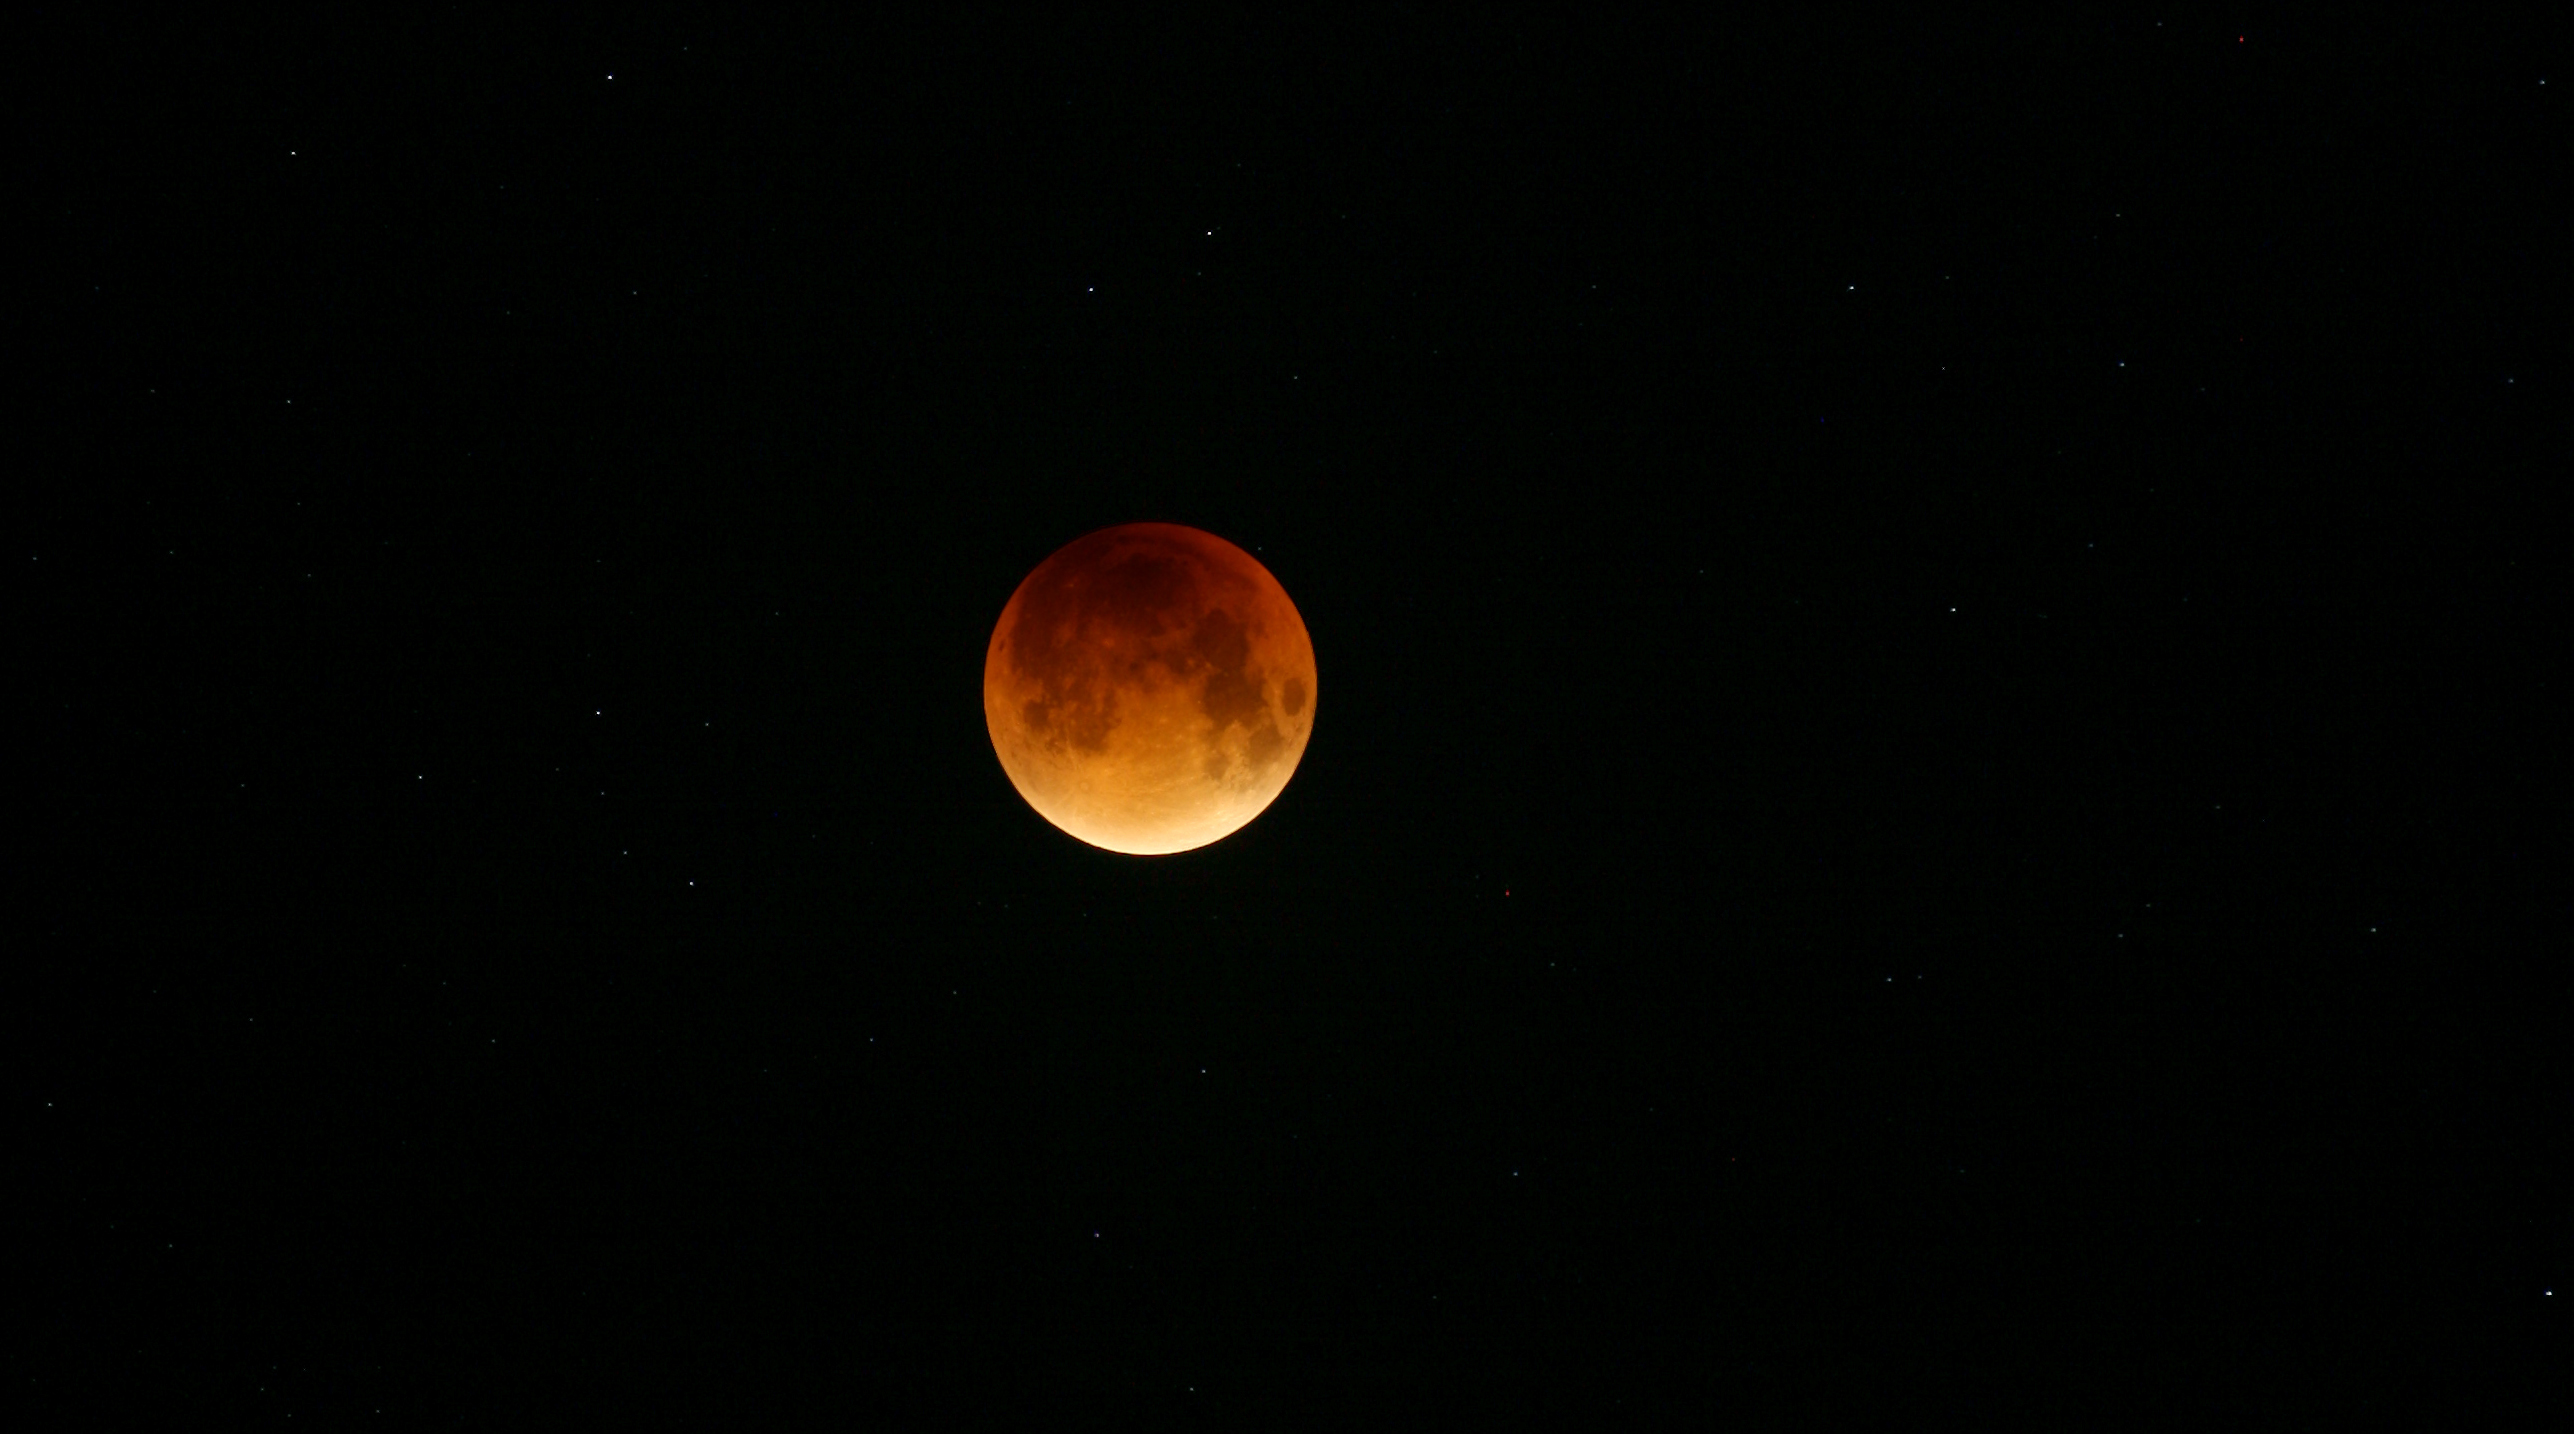 Photo eclipse de lune 2015 THDG_Full_Moon_WithStars_28092015